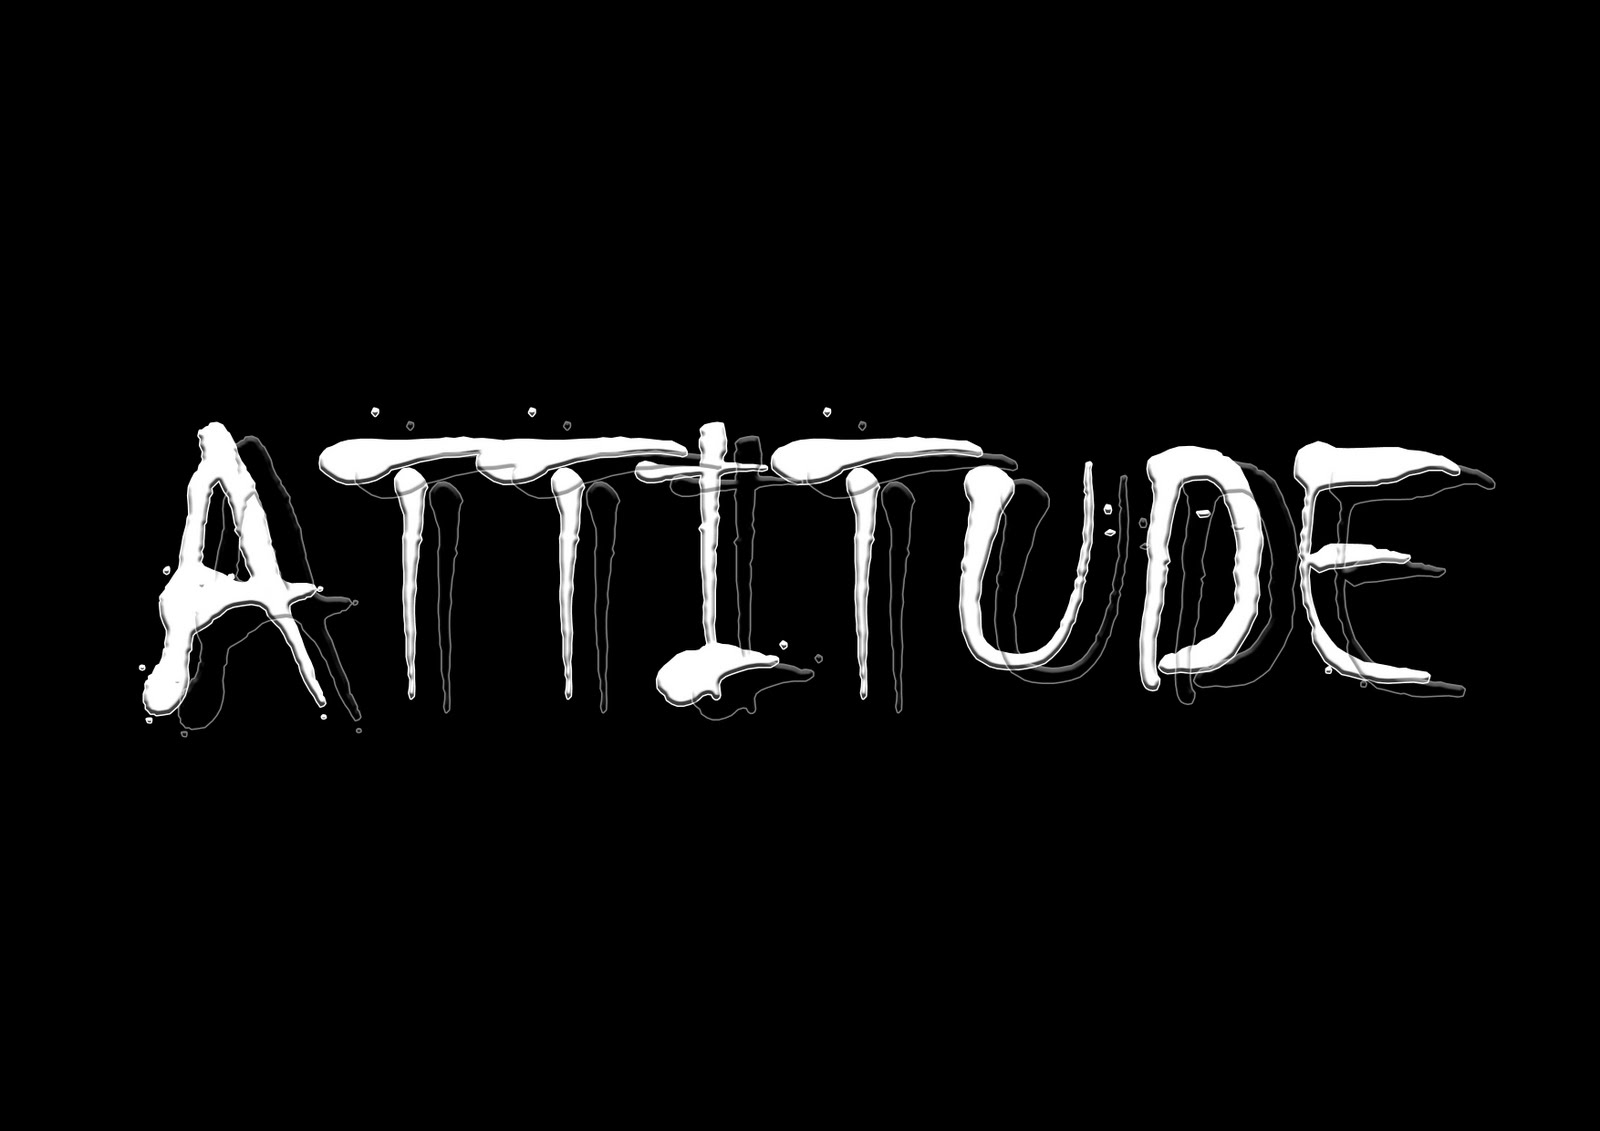 essays about attitude Advertisements: attitude is the mental state of individuals, which tends to act or respond or is ready to respond for or against objects, situations, etc with which.